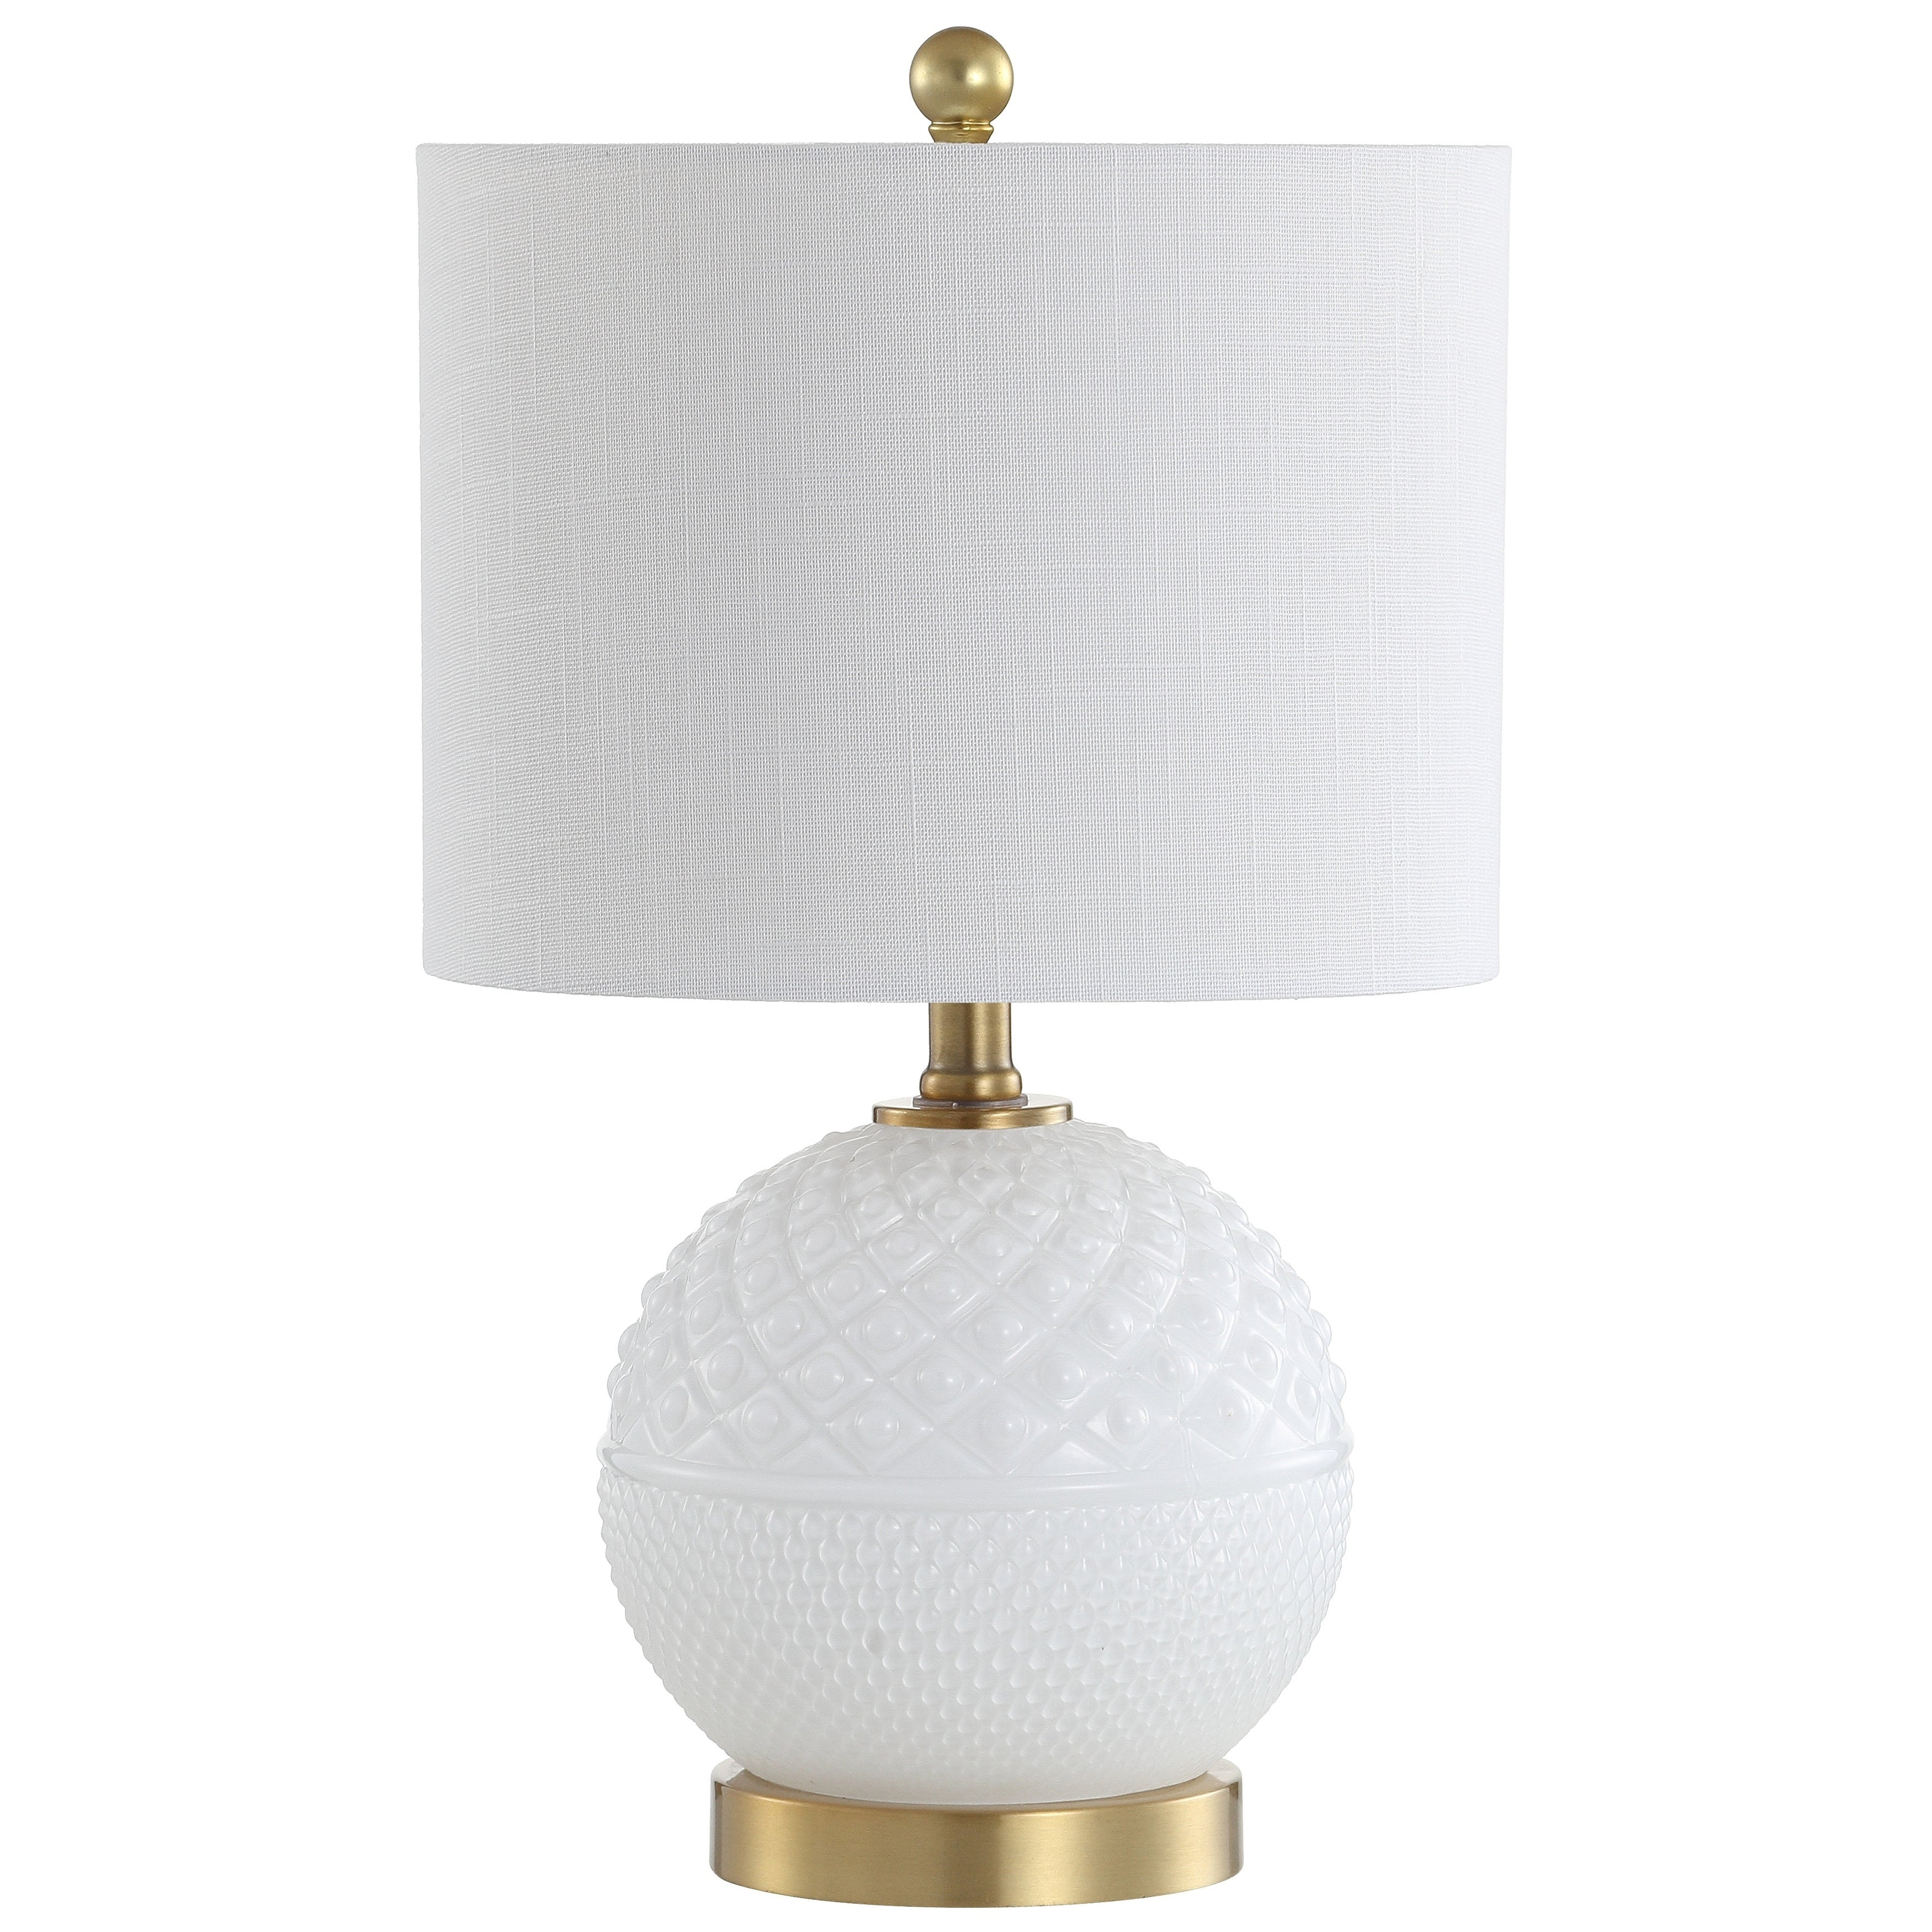 Julienne 20 5 Gl Led Table Lamp White Br Gold By Jonathan Y